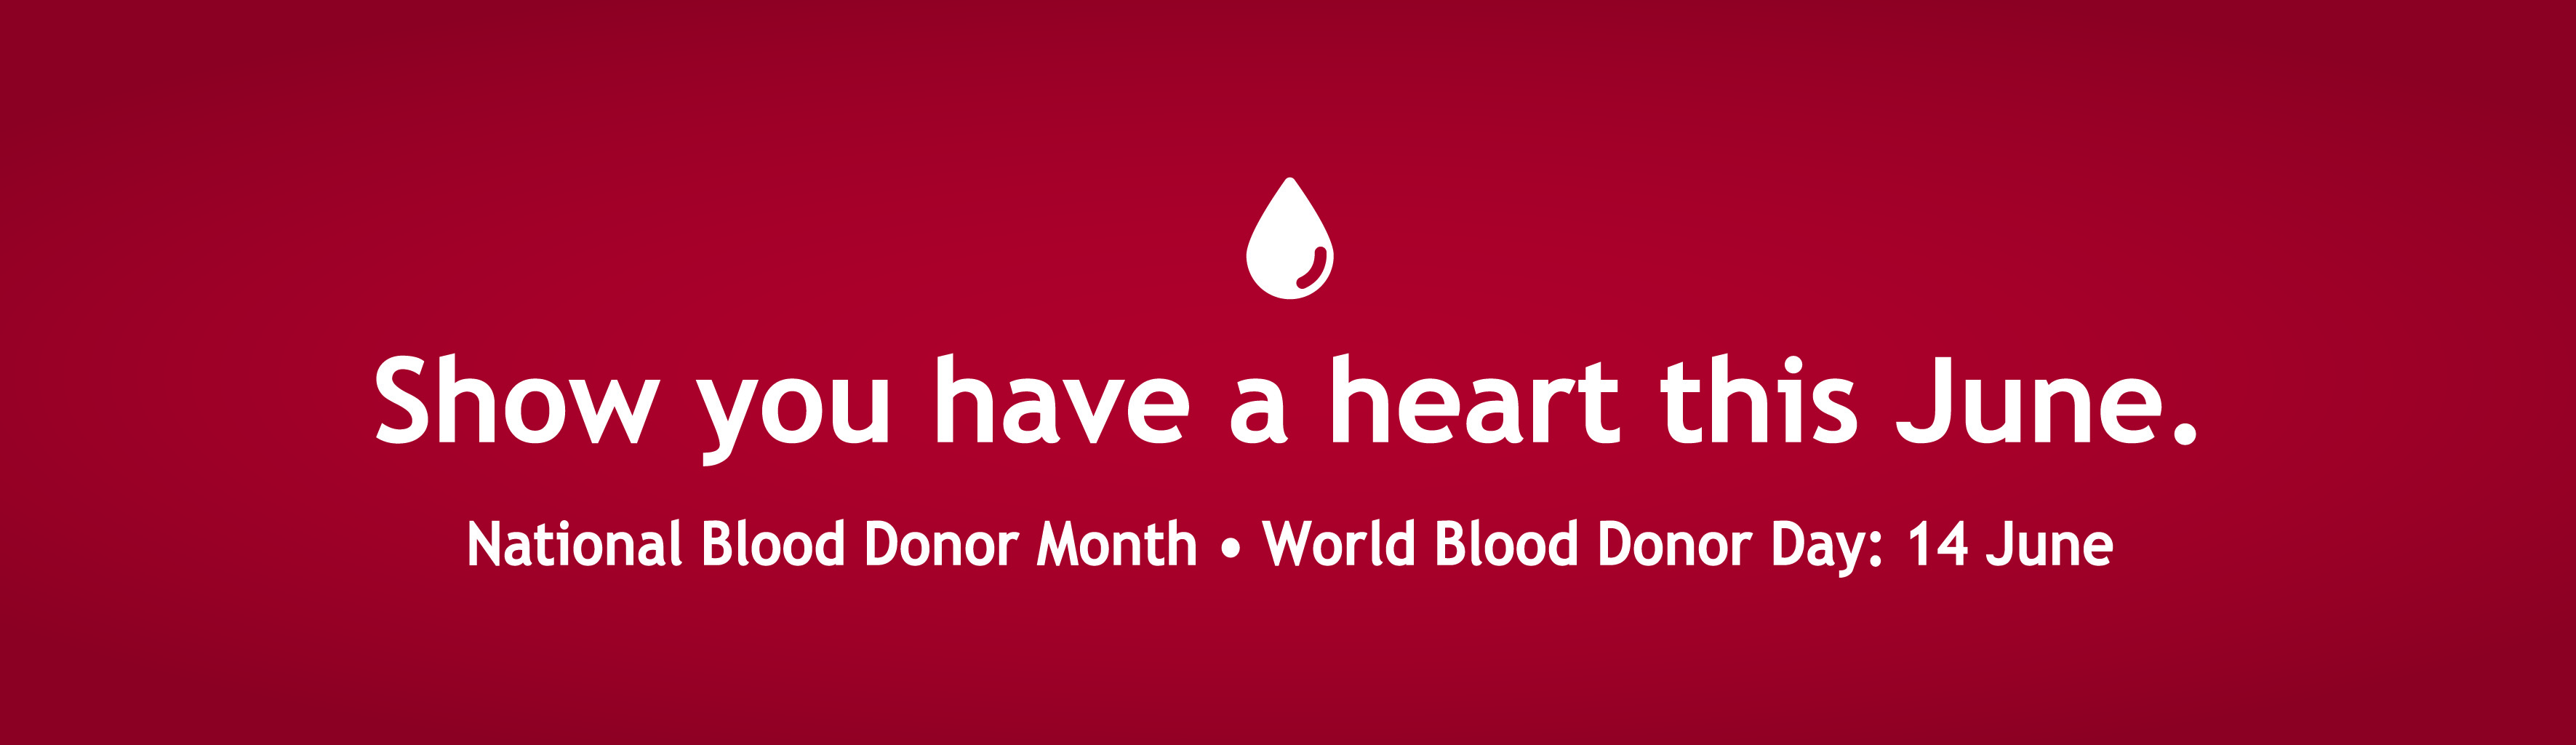 HQ Blood Donor Month Wallpapers | File 872.1Kb